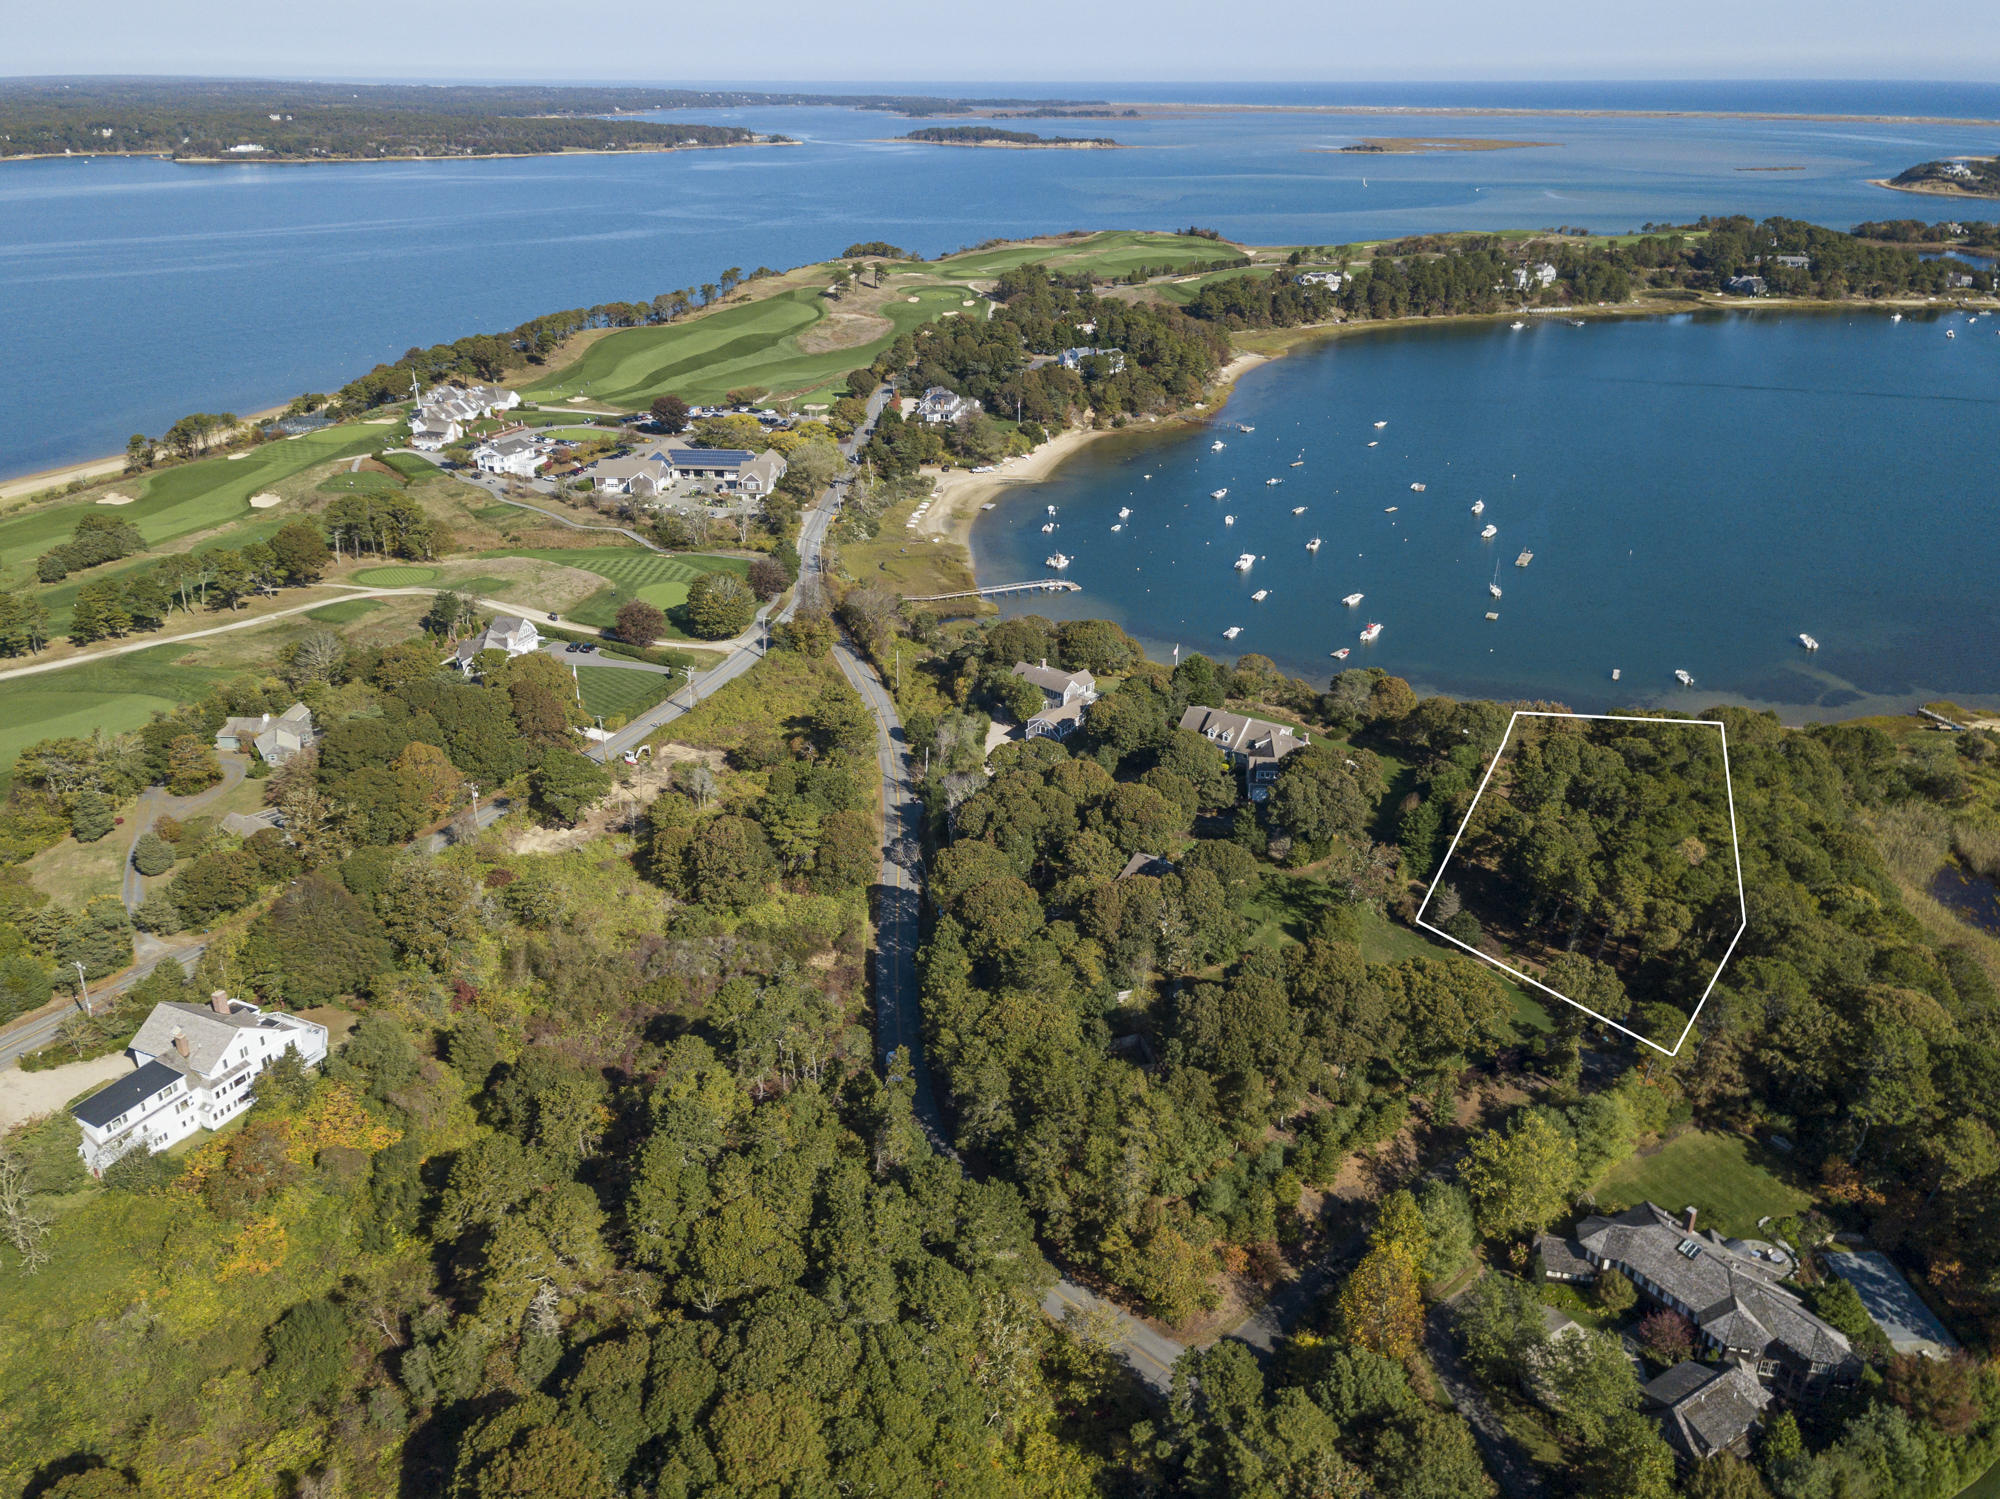 0 Crows Pond Road, Chatham MA, 02633 details